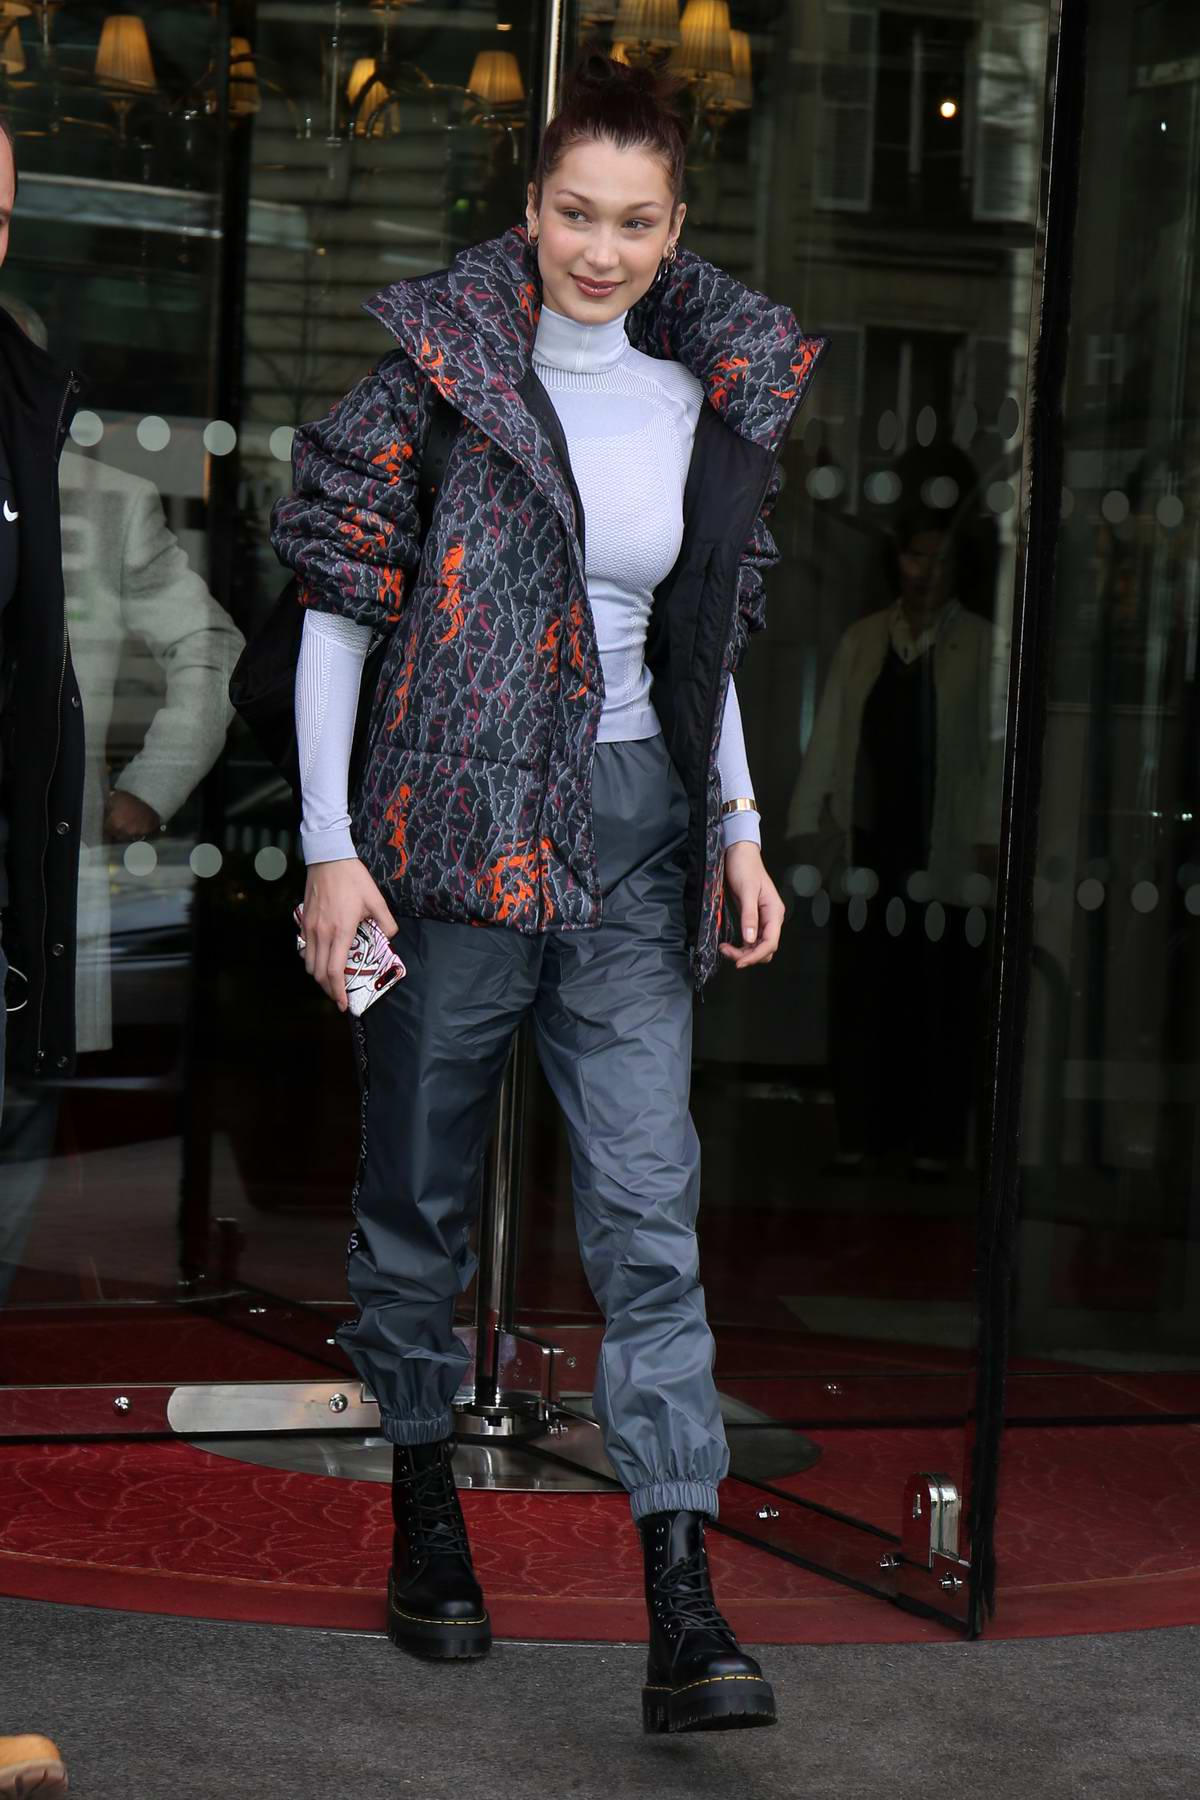 Bella Hadid wearing a patterned puffer jacket with Sankuanz track pants while she greet her fans outside The Royal Monceau Hotel in Paris, France